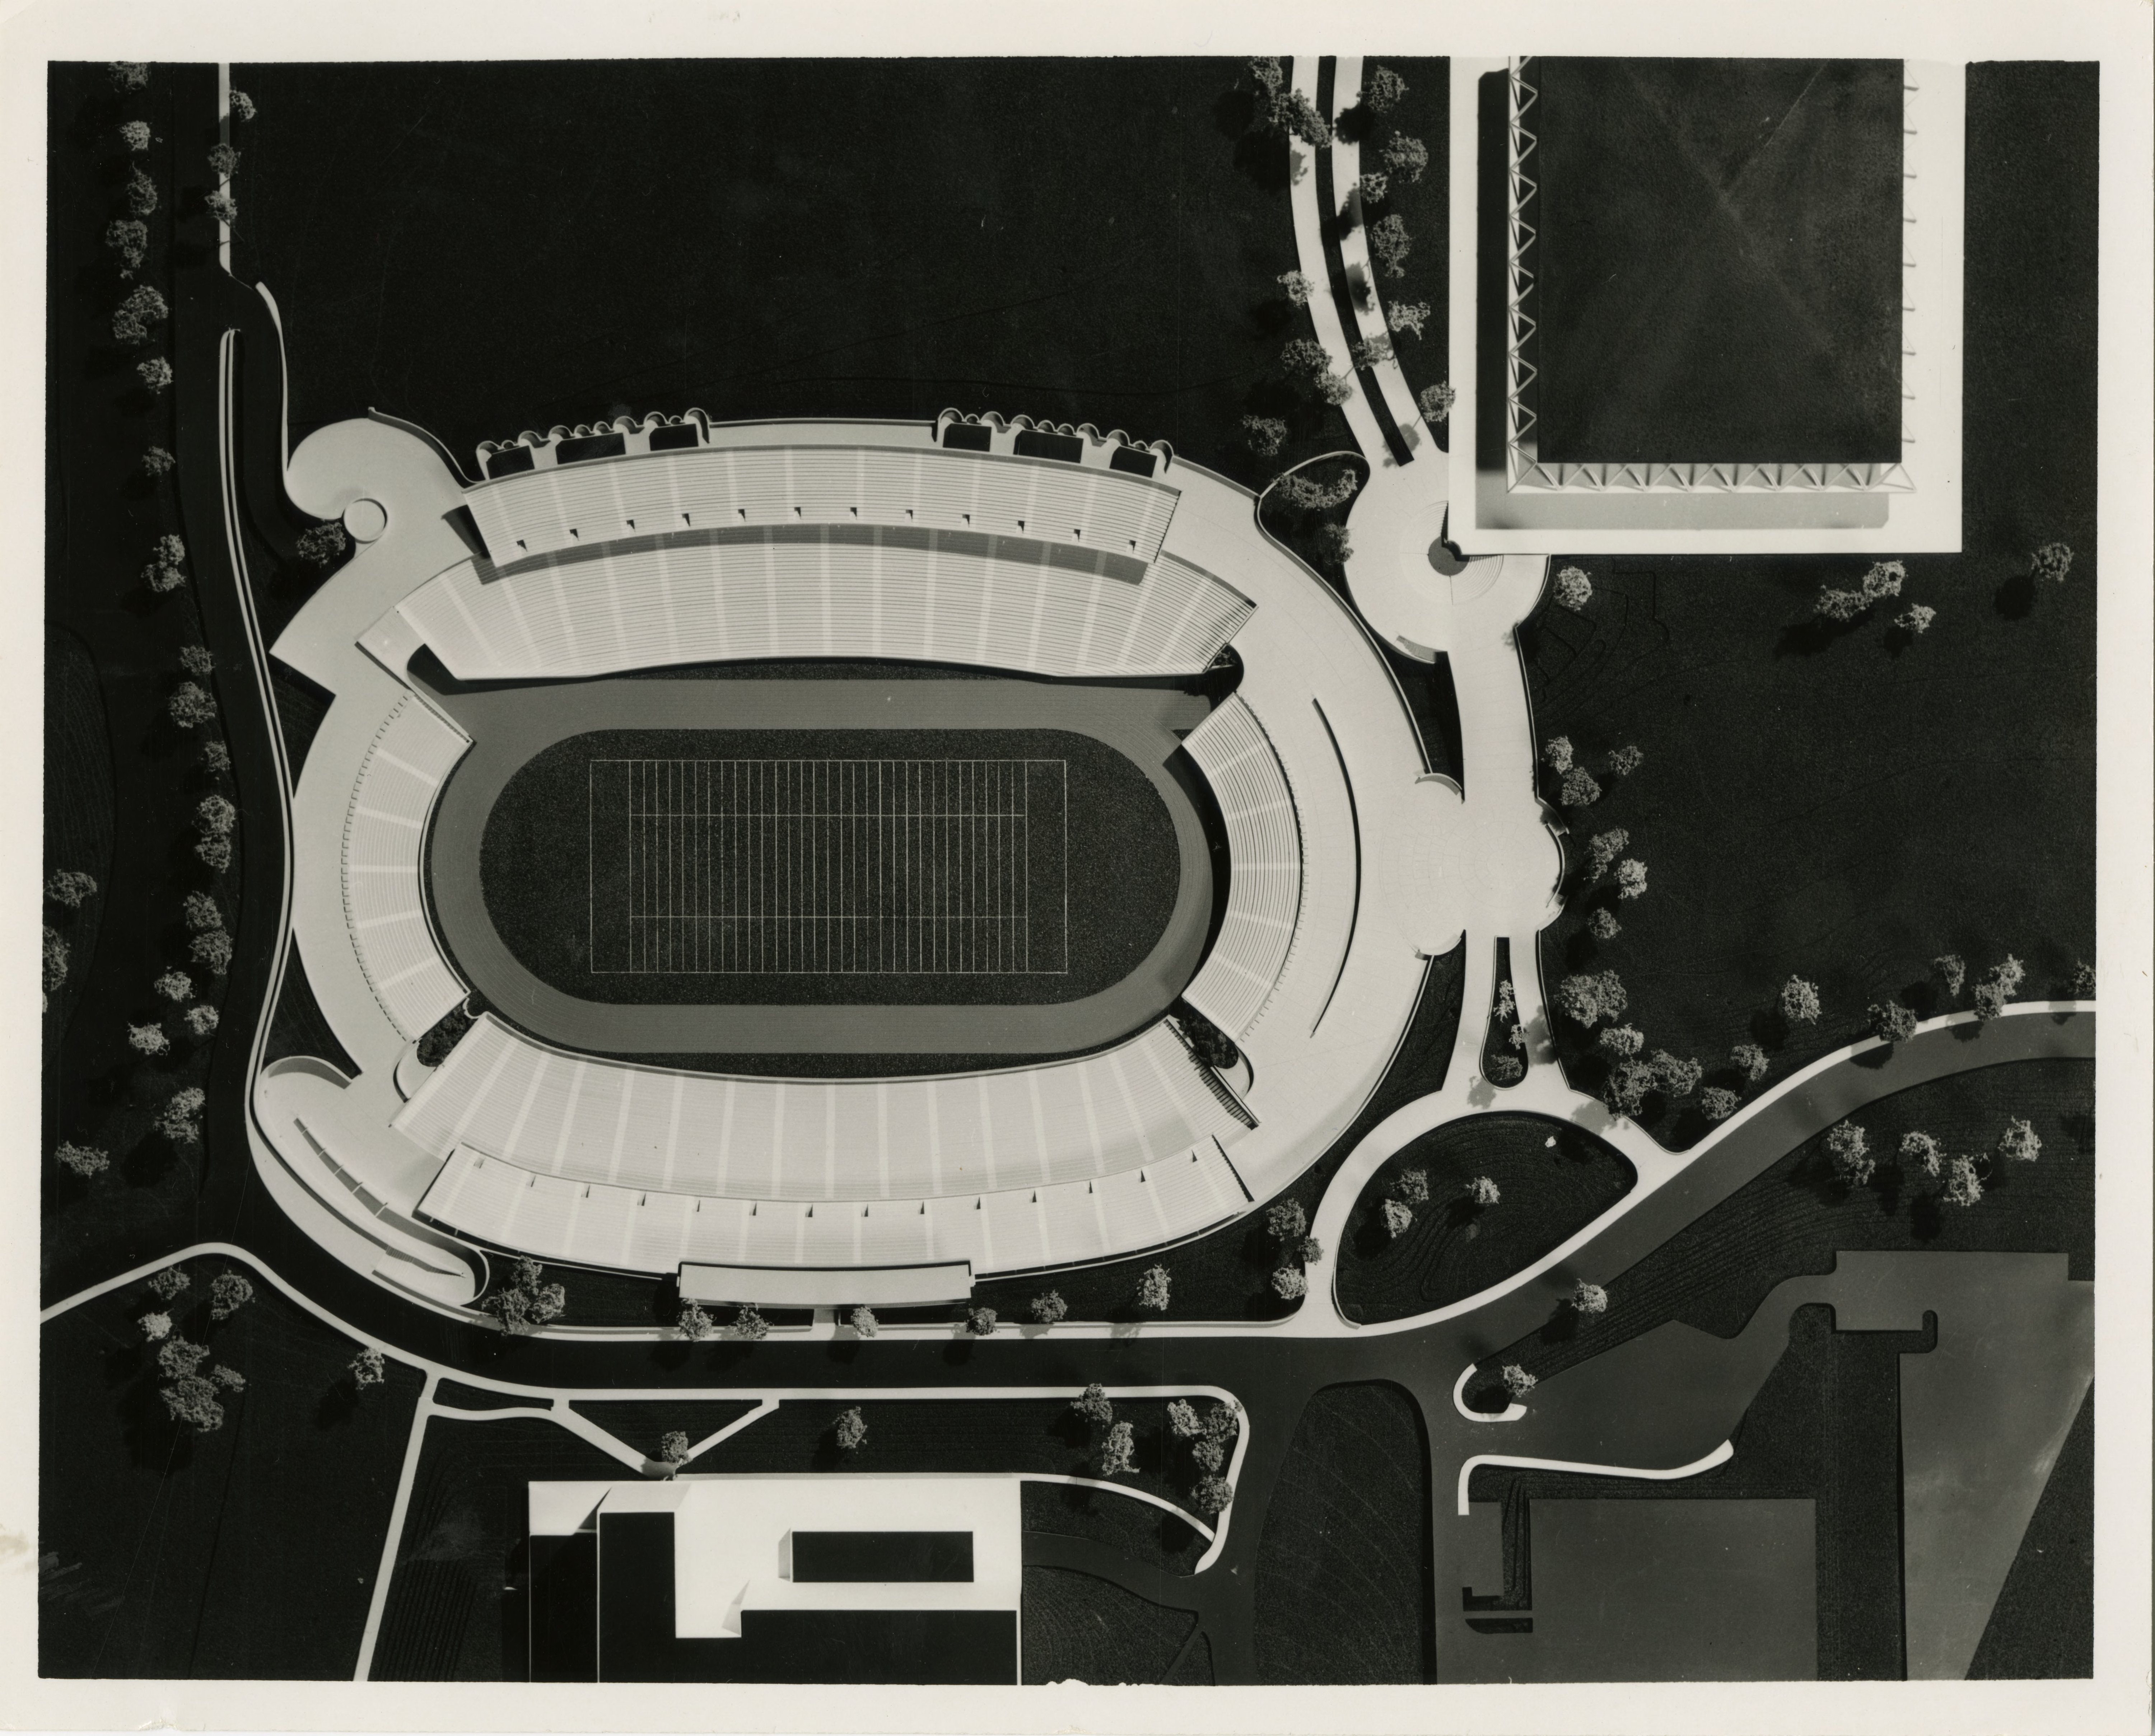 UCLA Library University Archives captures the original model for Drake Stadium before remodeling project in 1996.